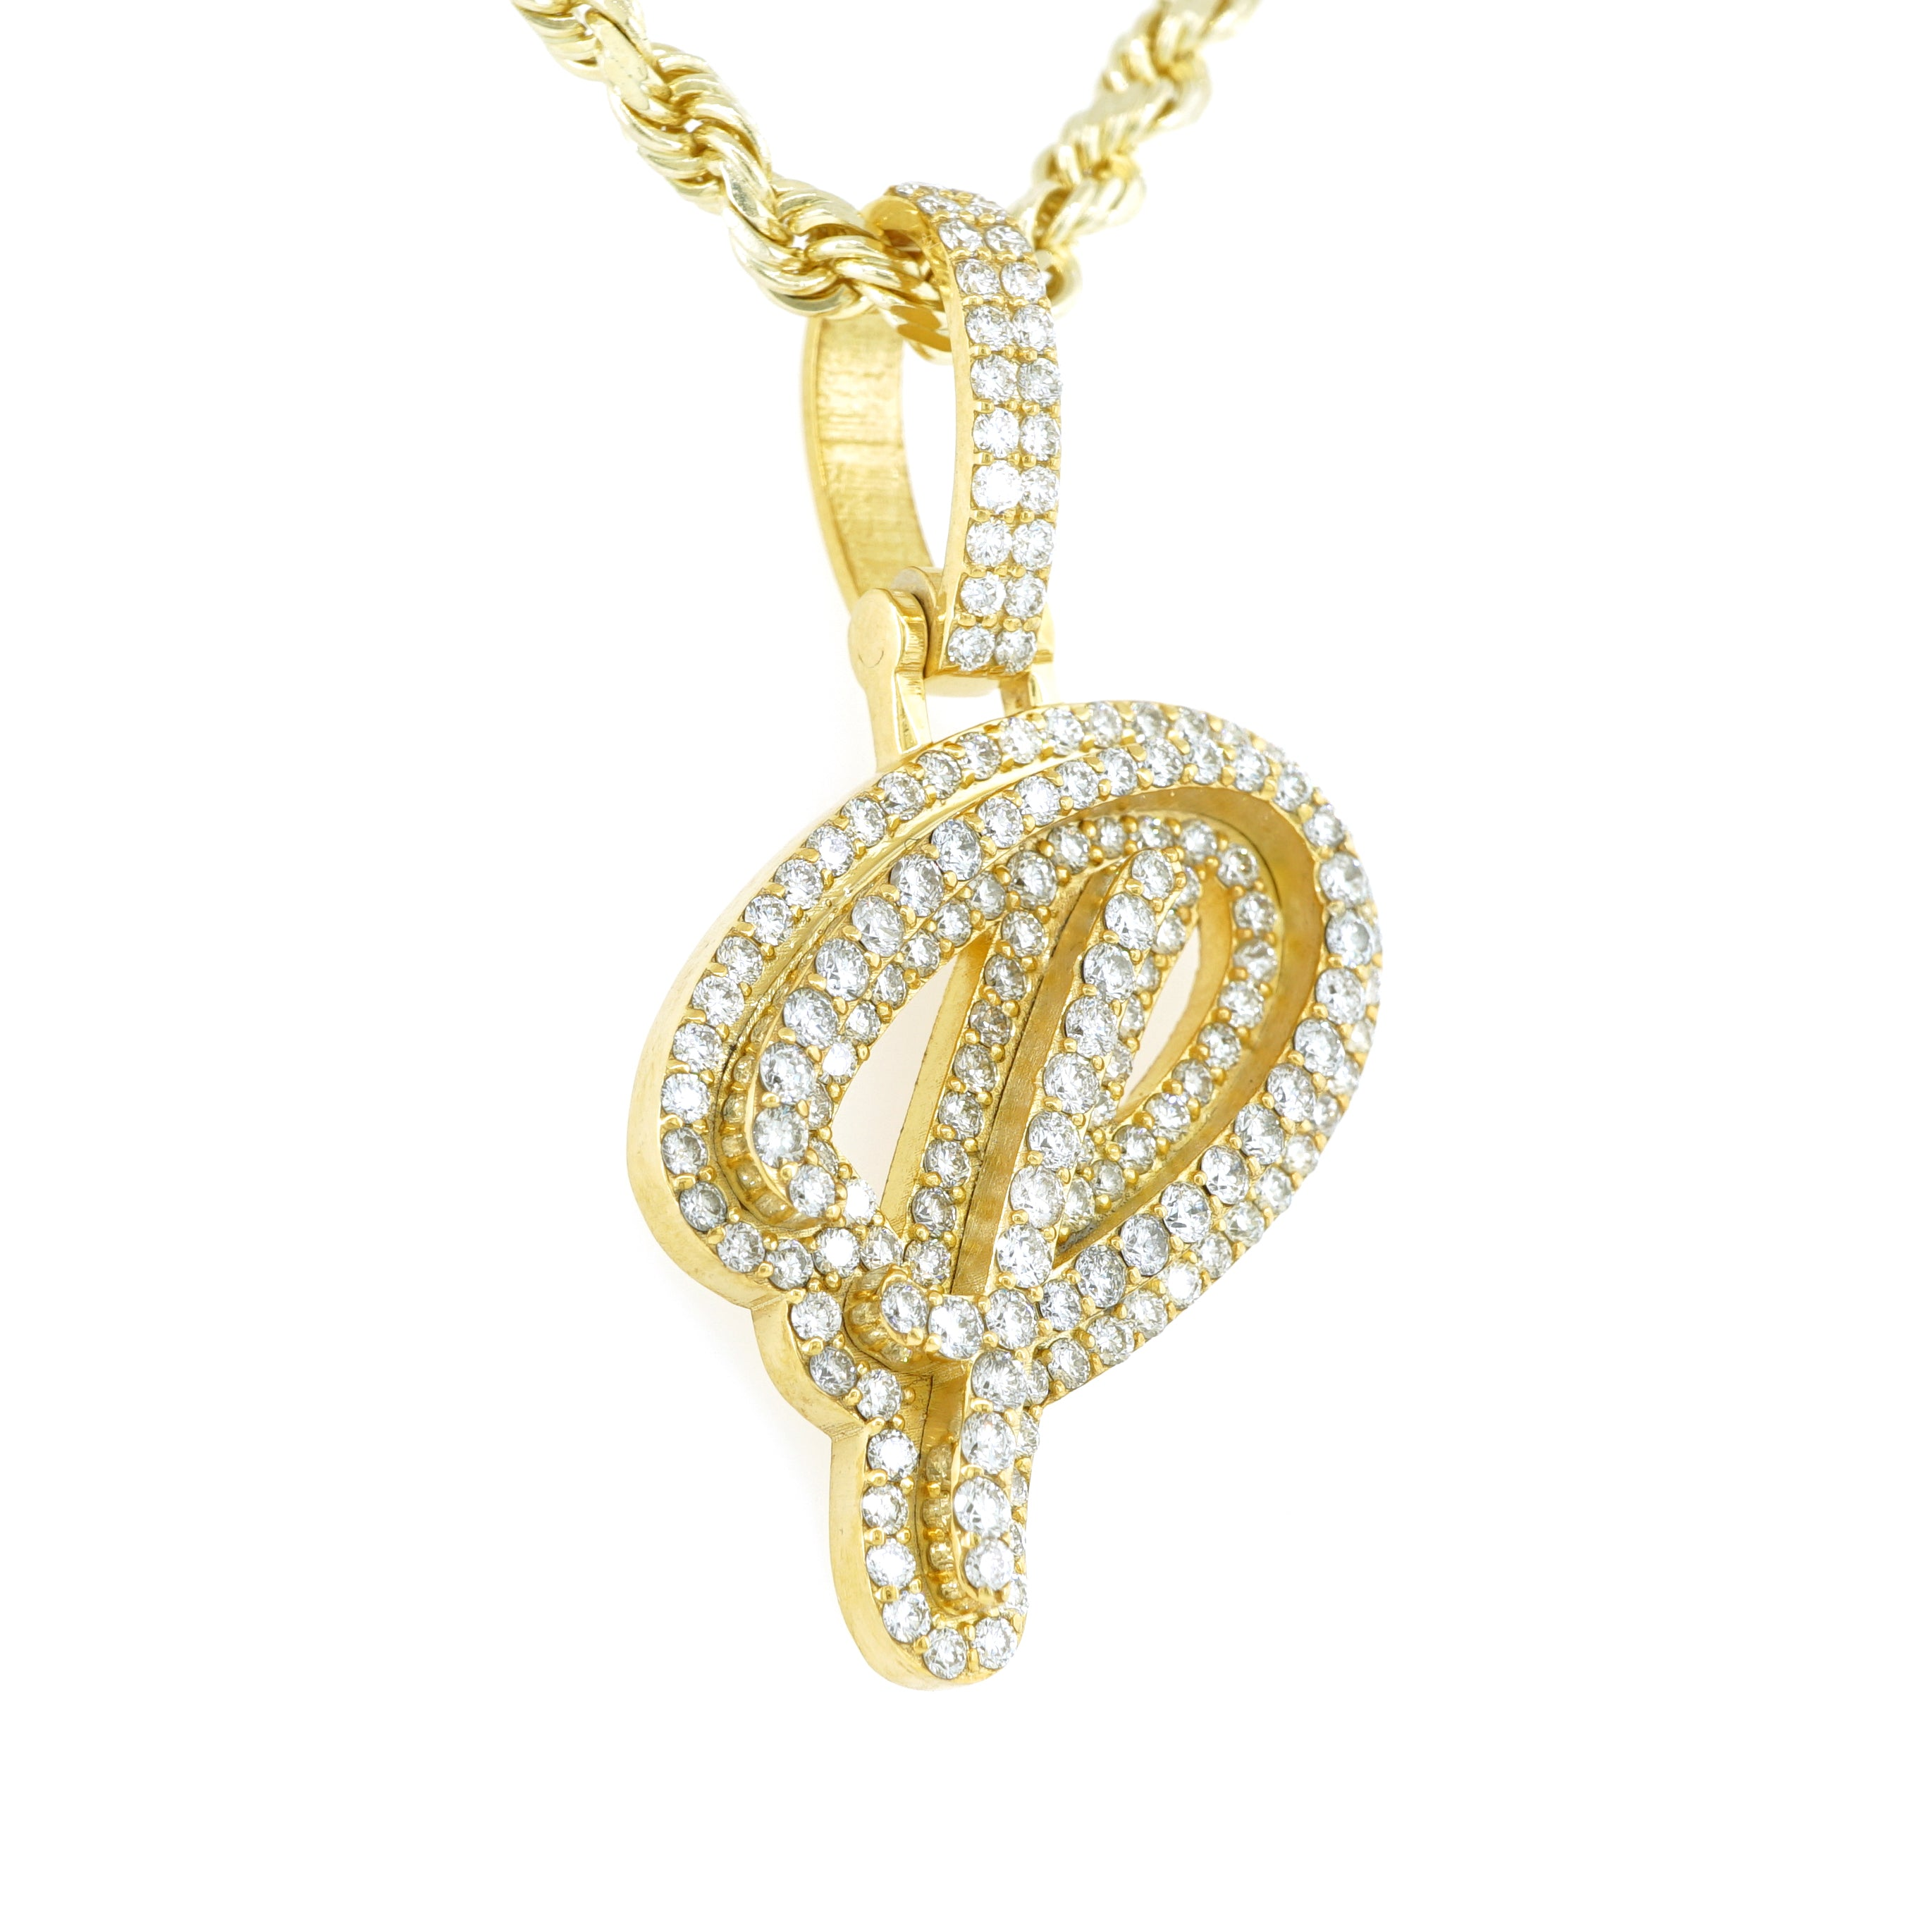 10K Yellow Gold Real Diamond Cursive Initial Letter Pendant 2.15CT